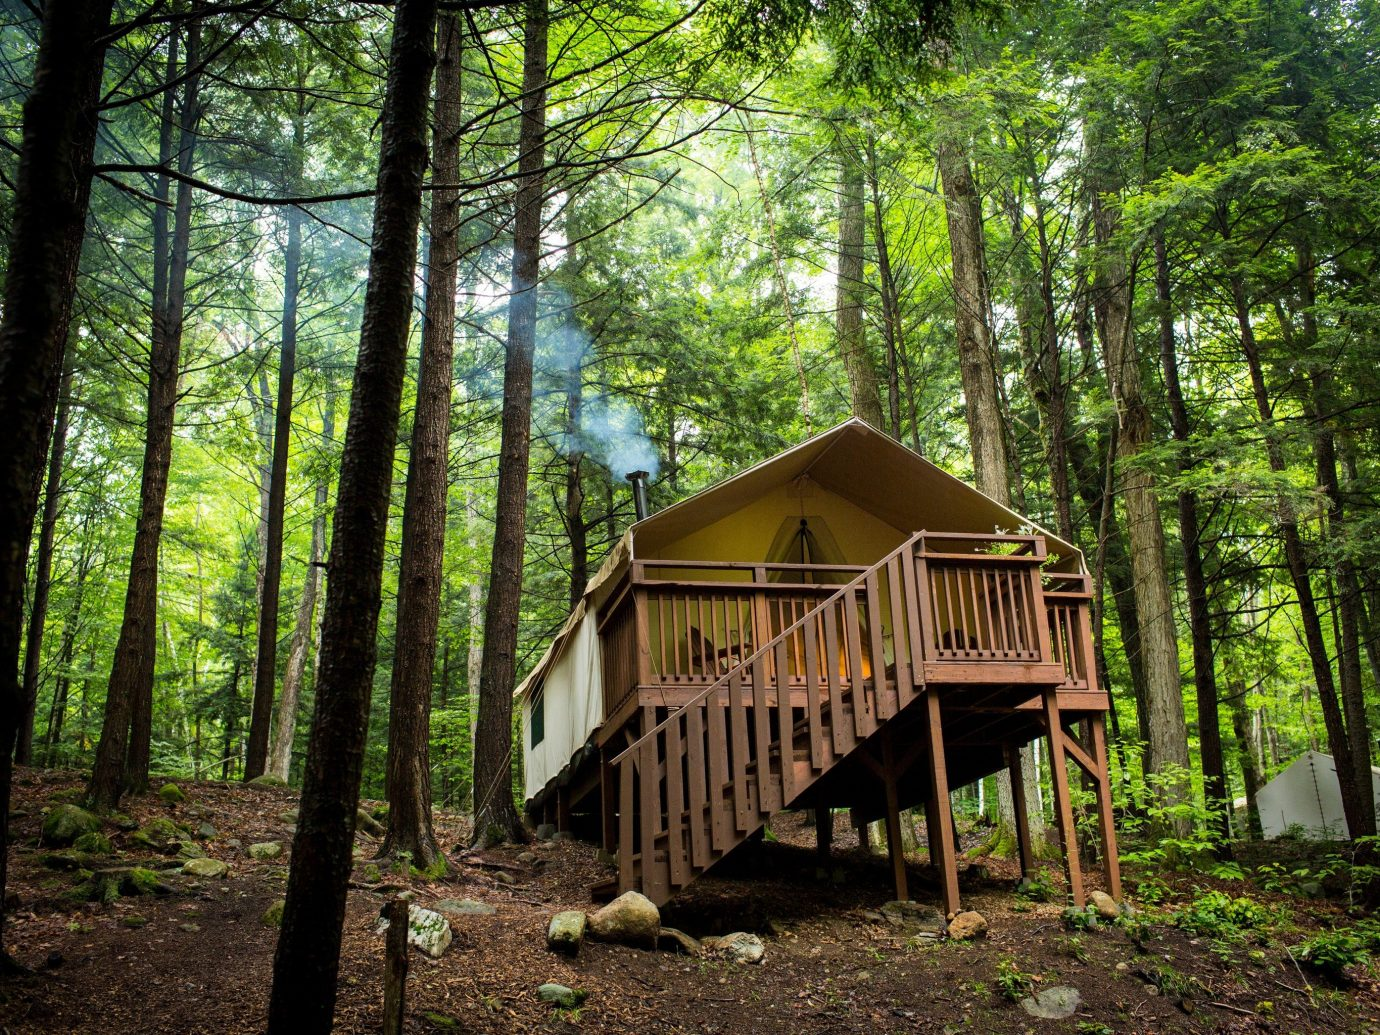 Hotels tree outdoor habitat ground building Nature Forest wood wilderness natural environment woodland hut wooden house wooded Jungle park rural area shack rainforest area log cabin backyard surrounded lush